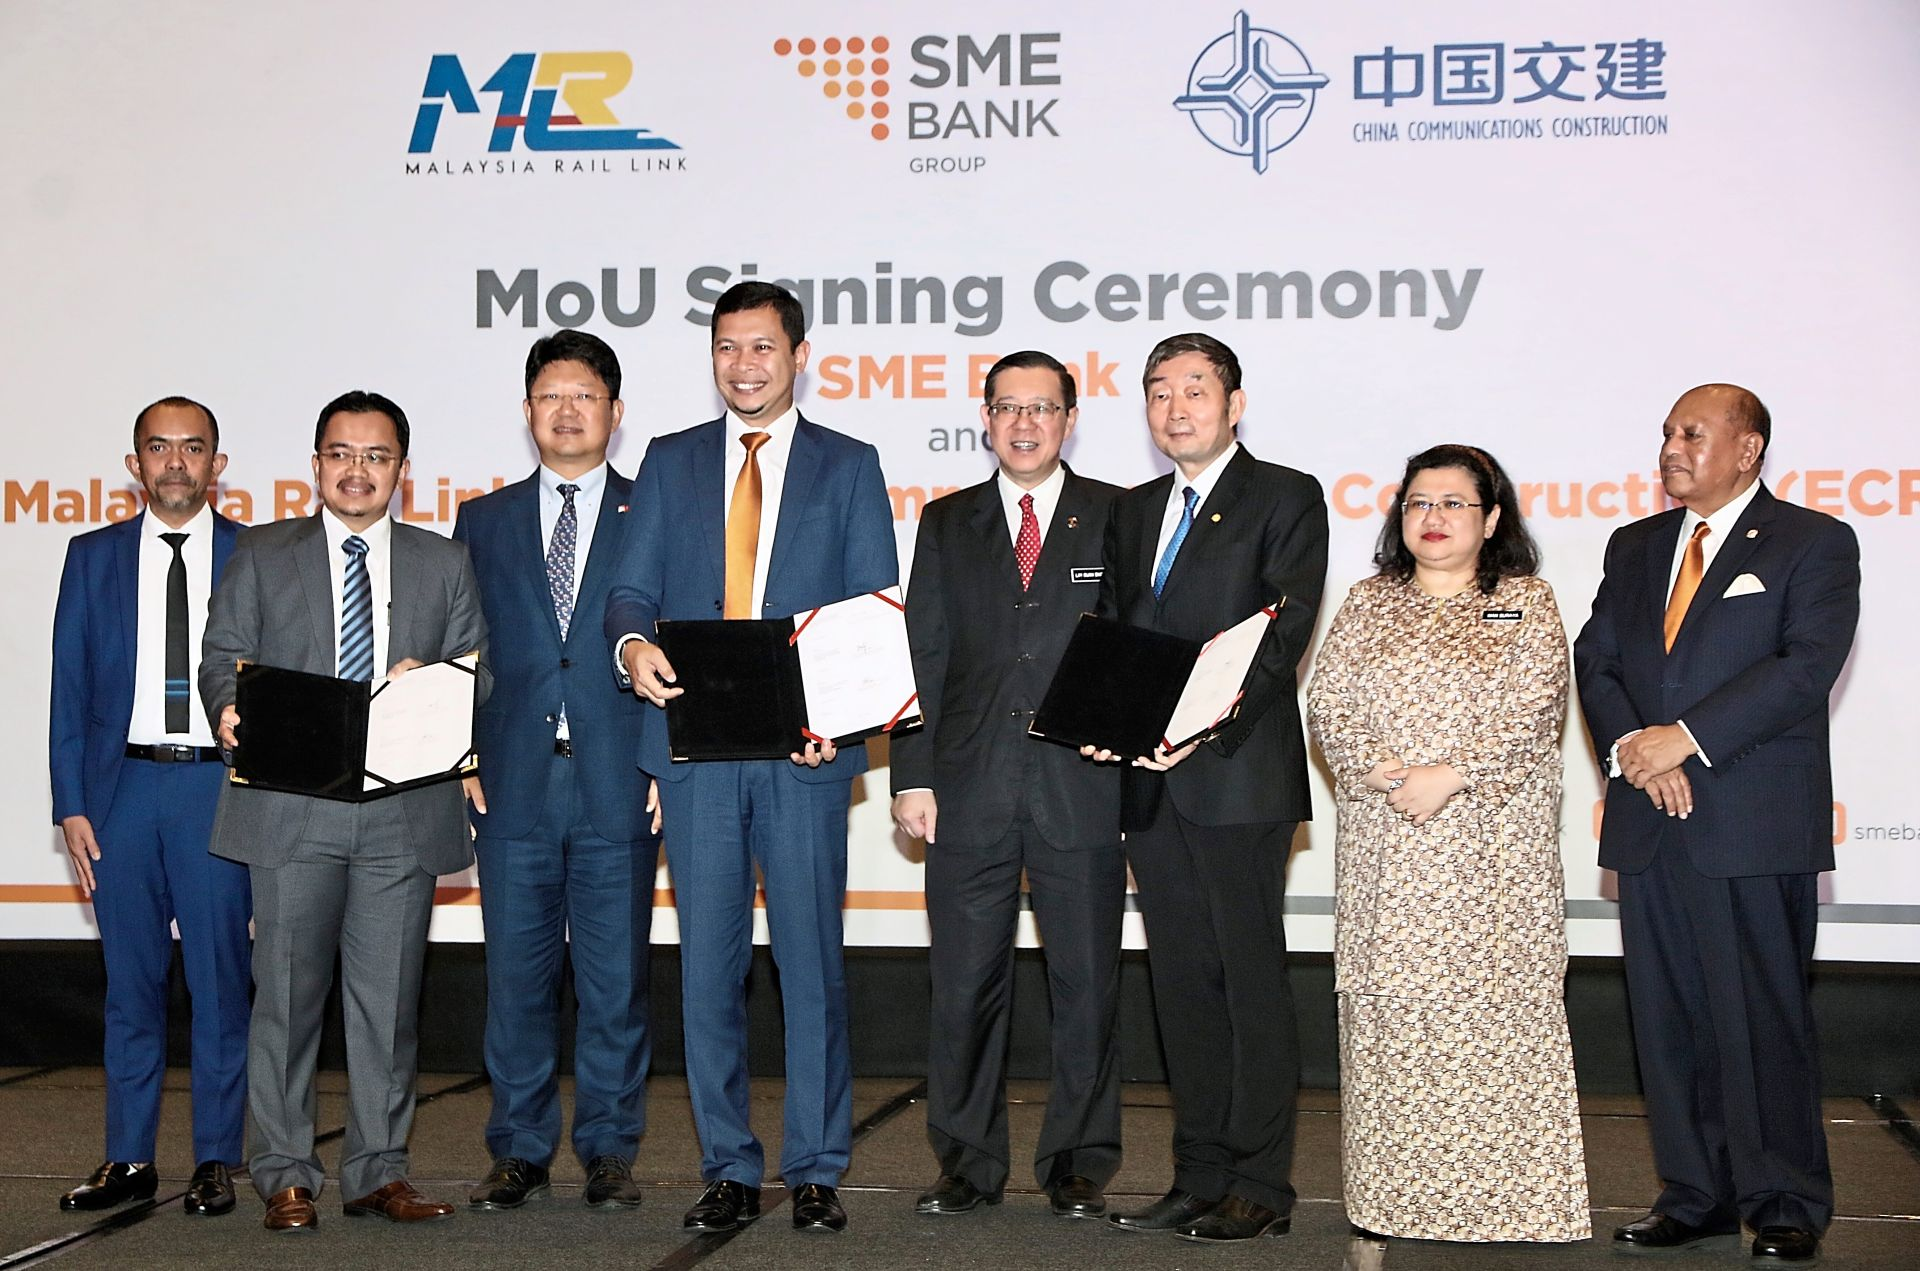 ECRL funding: MoU signing ceremony to provide access to financing for local ECRL contractors. (From left) SME Bank chief banking officer Mohammad Hardee Ibrahim, MRL CEO Datuk Seri Darwis Abdul Razak, Ambassador of The People's Republic China His Excellency Bai Tian, SME Bank group president Aria Putera Ismail, Lim, ECRL Sdn Bhd project director Fang Zhenru andEntrepreneur Development Ministry secretary-general Datuk Wan Suraya Wan Mohd Radzi.